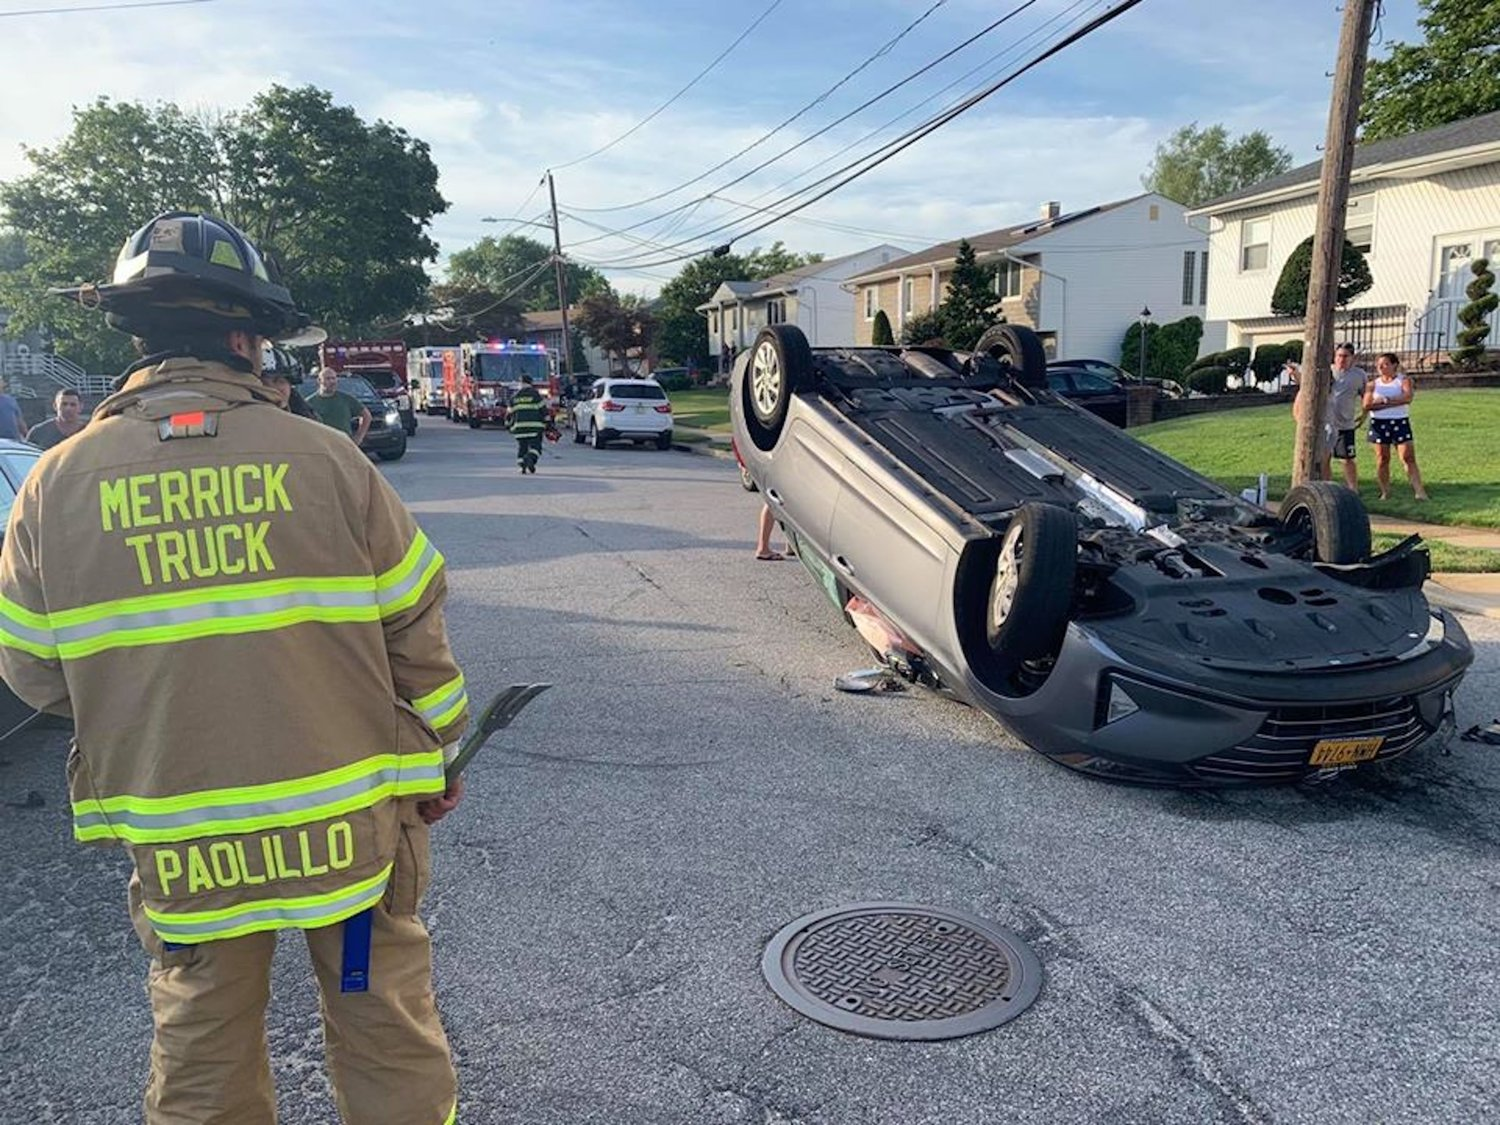 The department also responded to reports of a single overturned vehicle that occurred on a residential street in south Merrick Sunday. The driver reportedly fled the scene on foot.